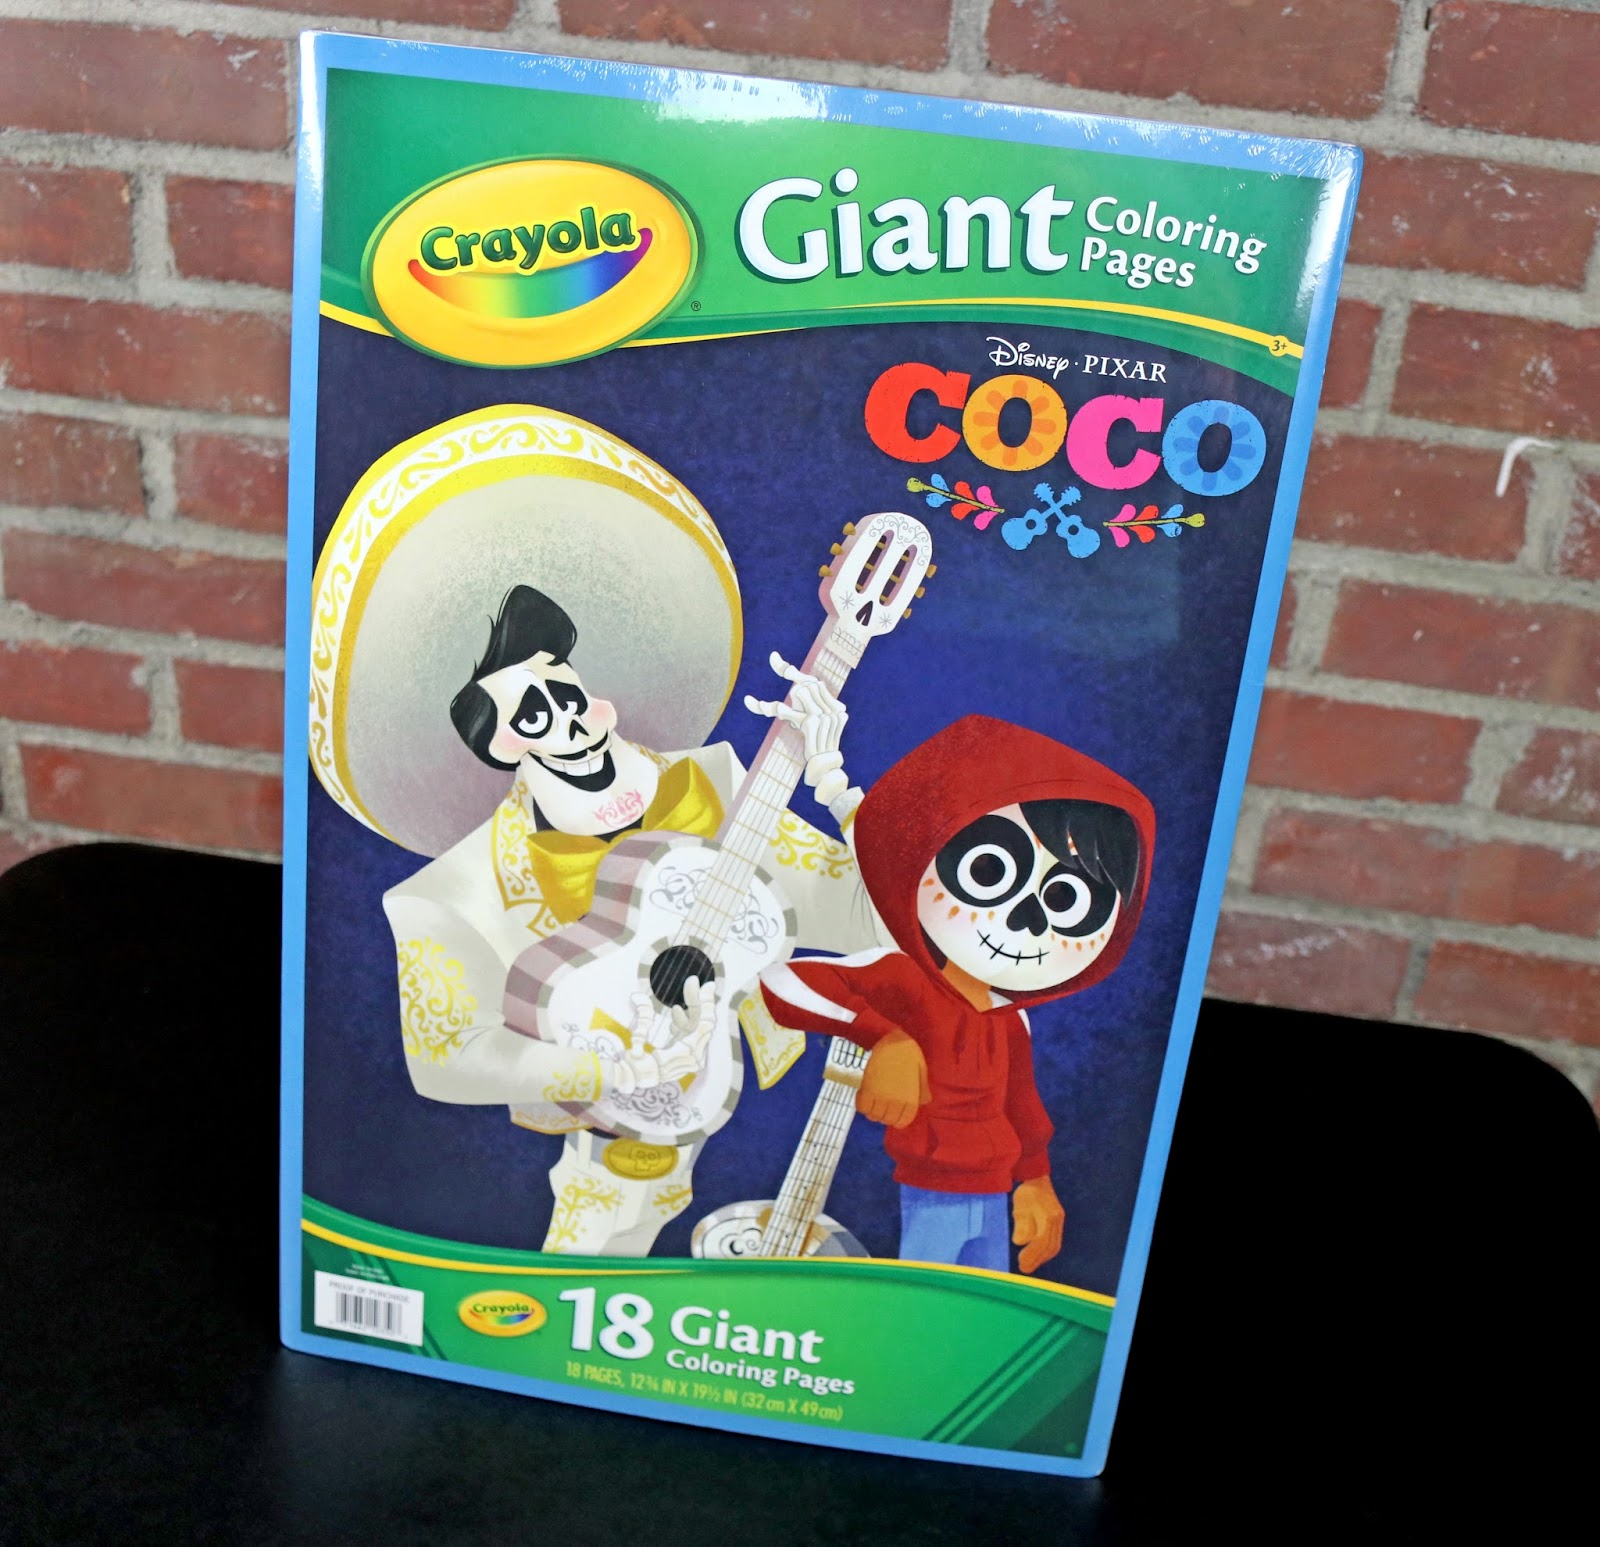 coco crayola giant coloring book - Giant Coloring Book